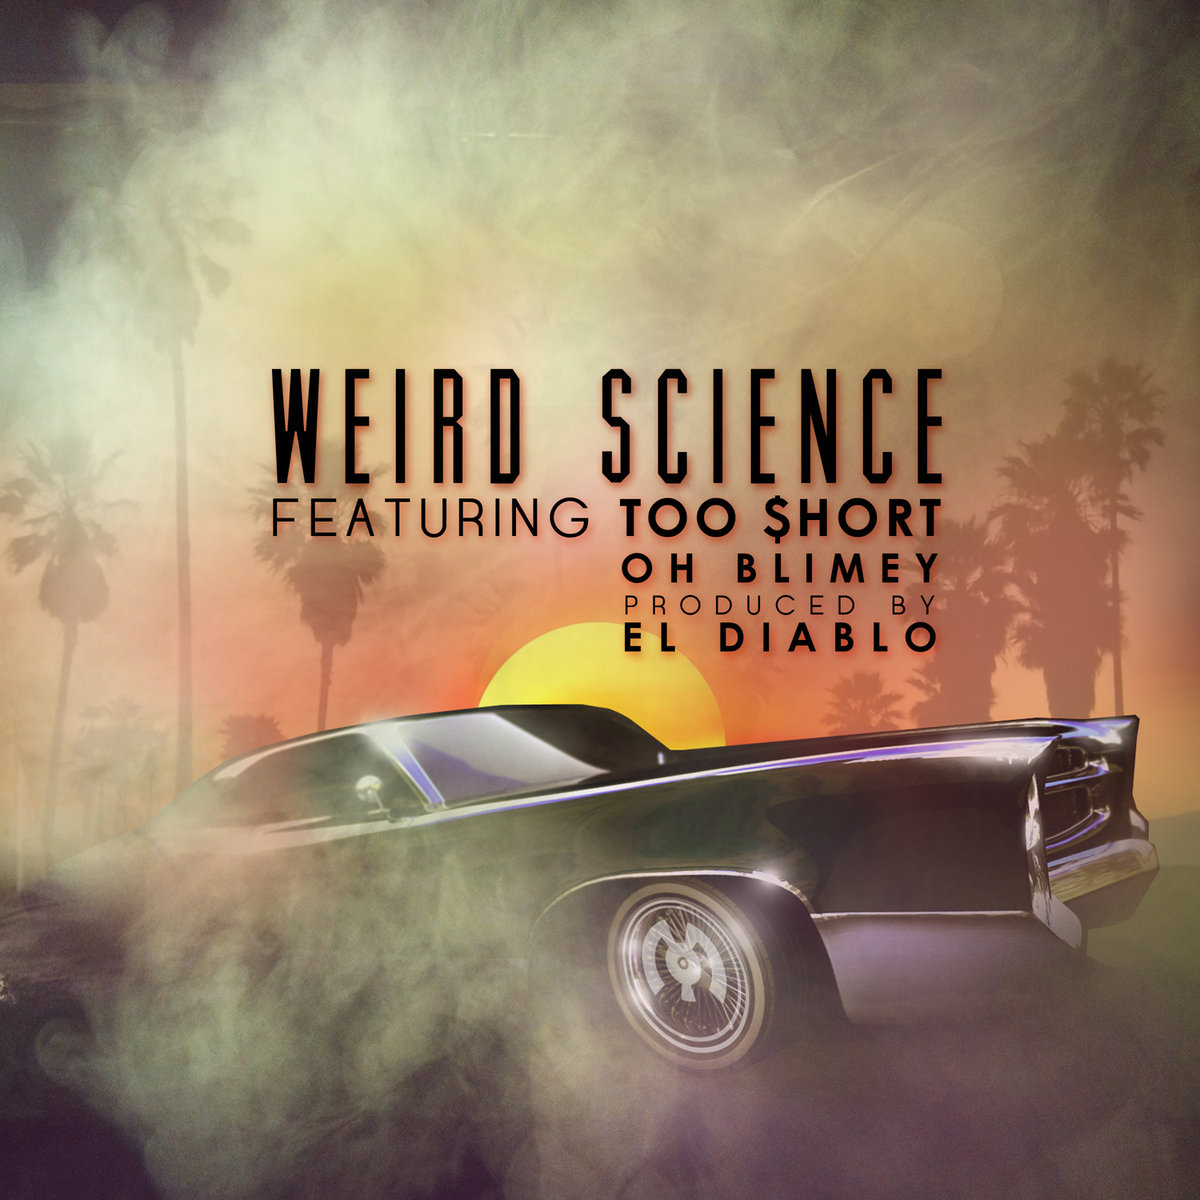 Too $hort, Oh Blimey, El Diablo - Weird Science (Mochipet Remix) @ 'Weird Science' album (electronic, dubstep)